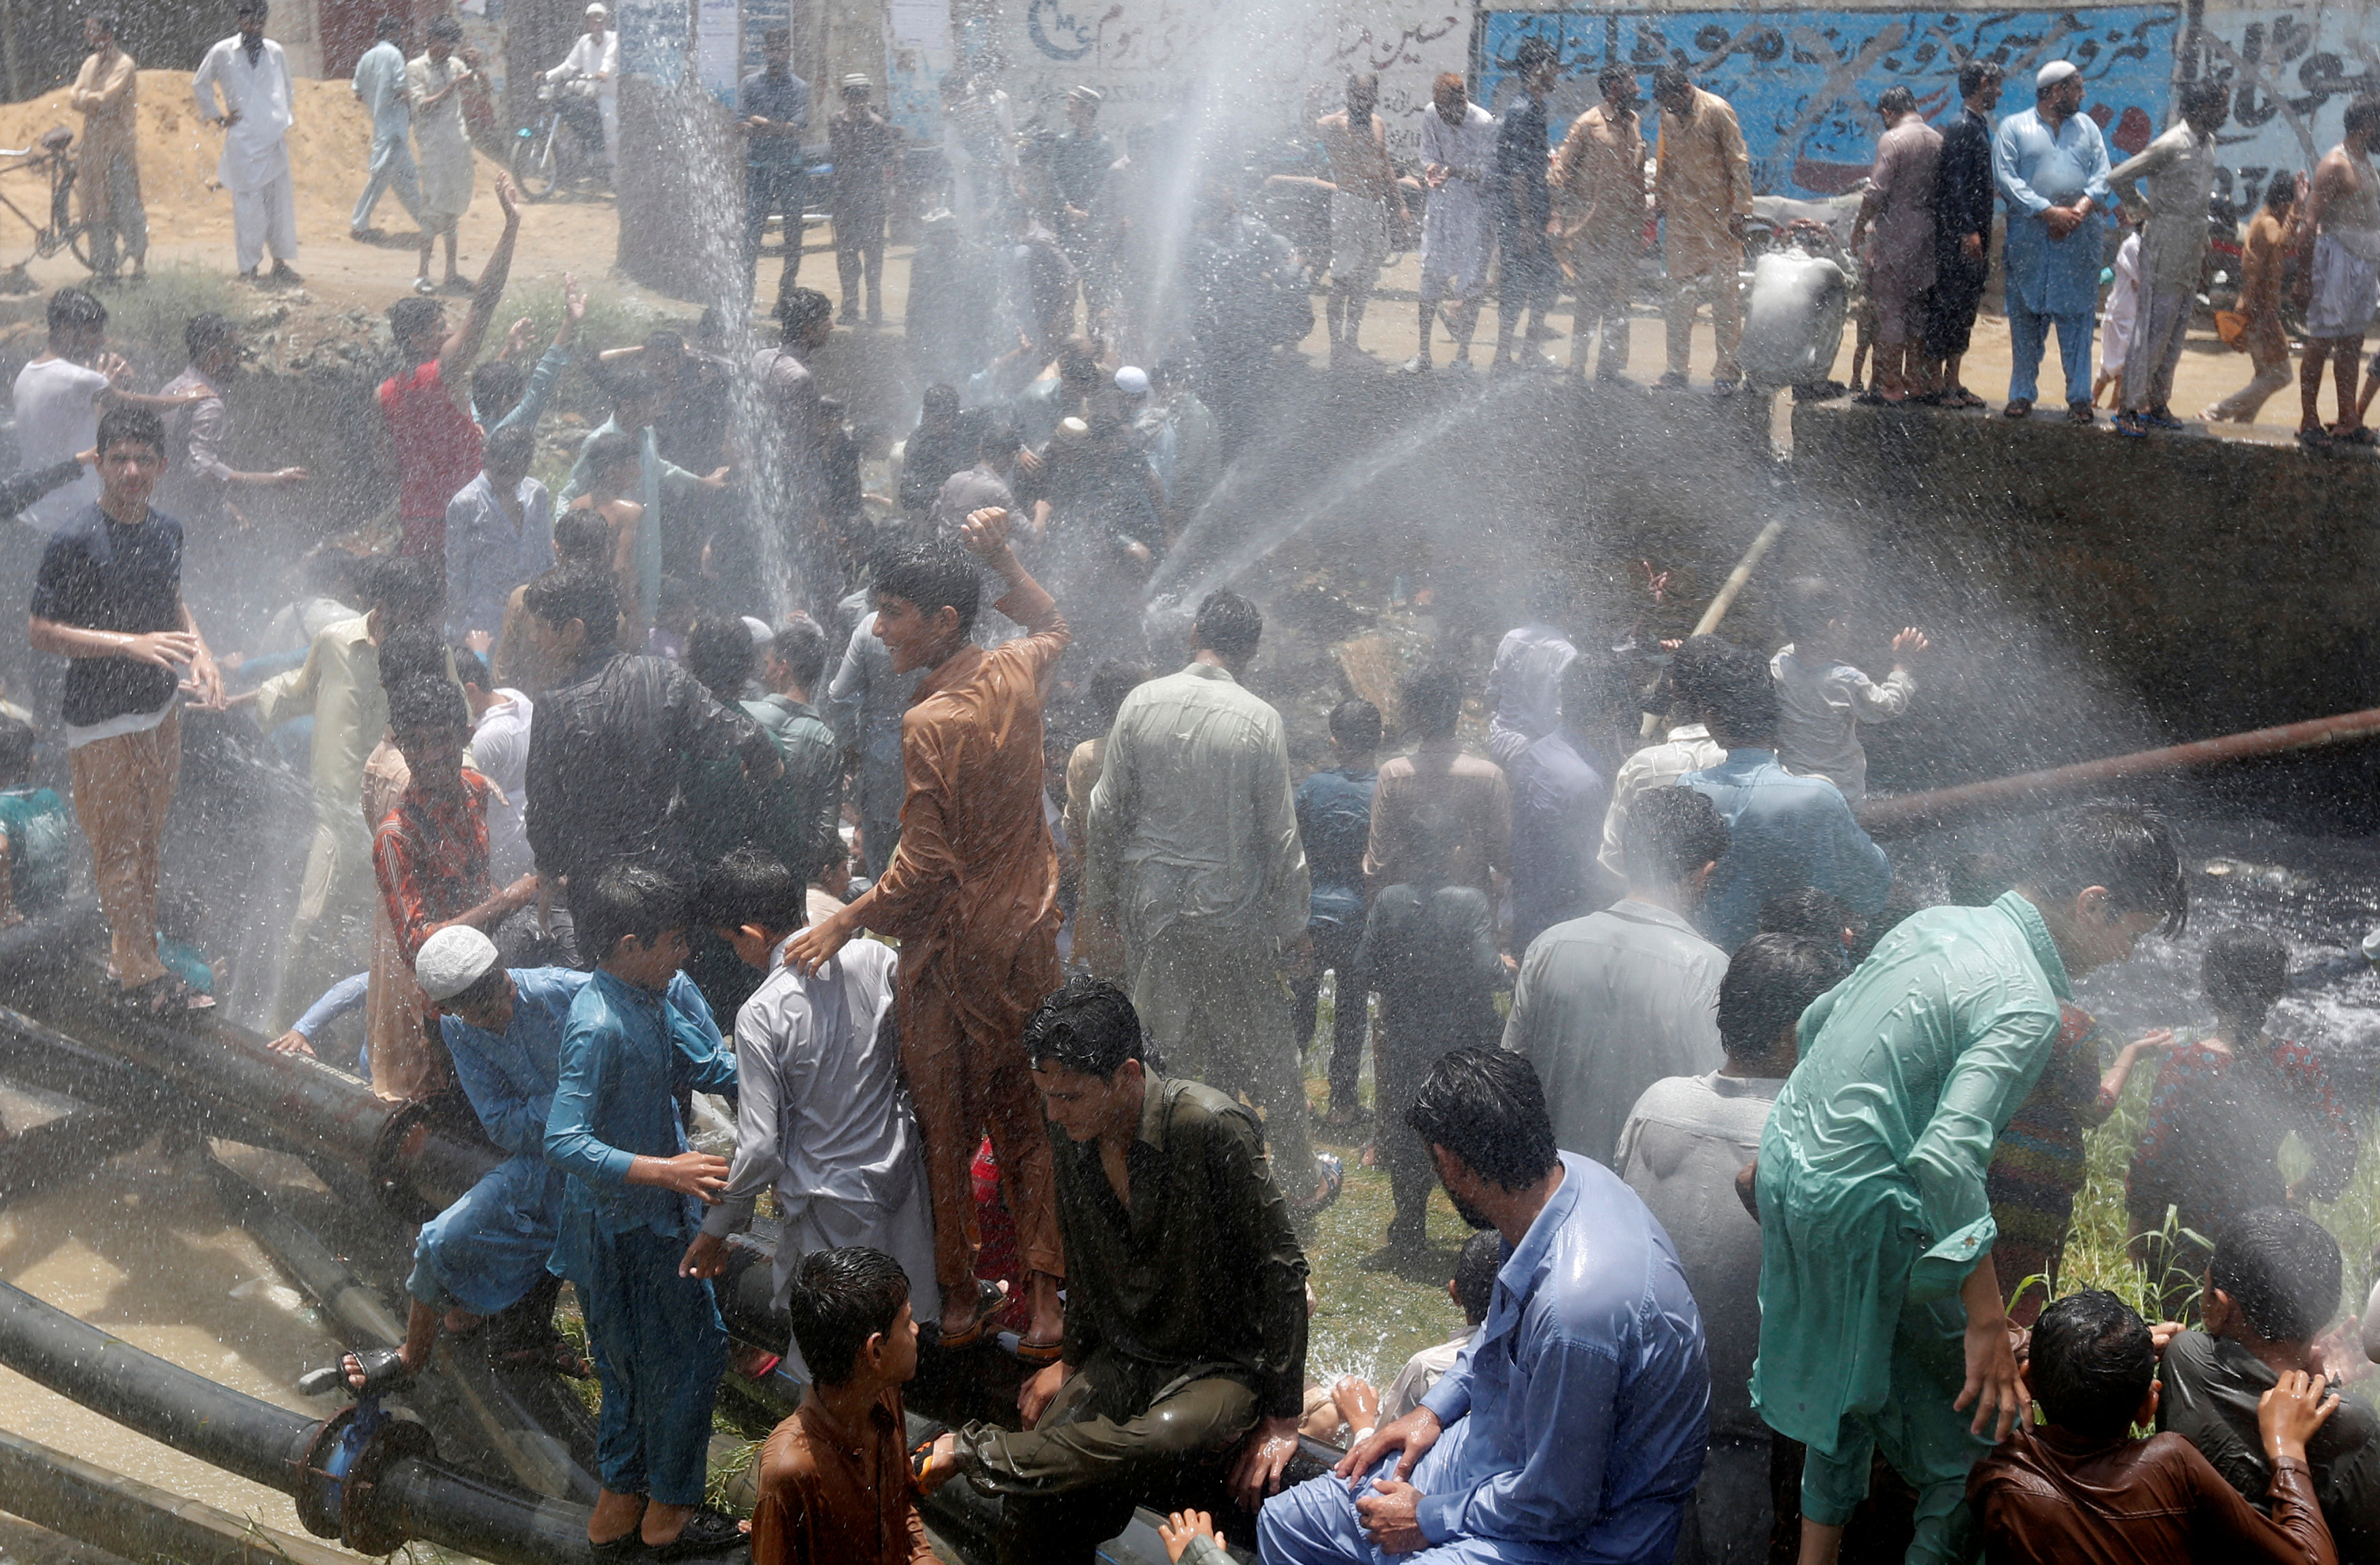 People cool off with water from water lines after they punctured them in protest against the power outages in their area in Karachi, Pakistan May 30, 2017. REUTERS/Akhtar Soomro